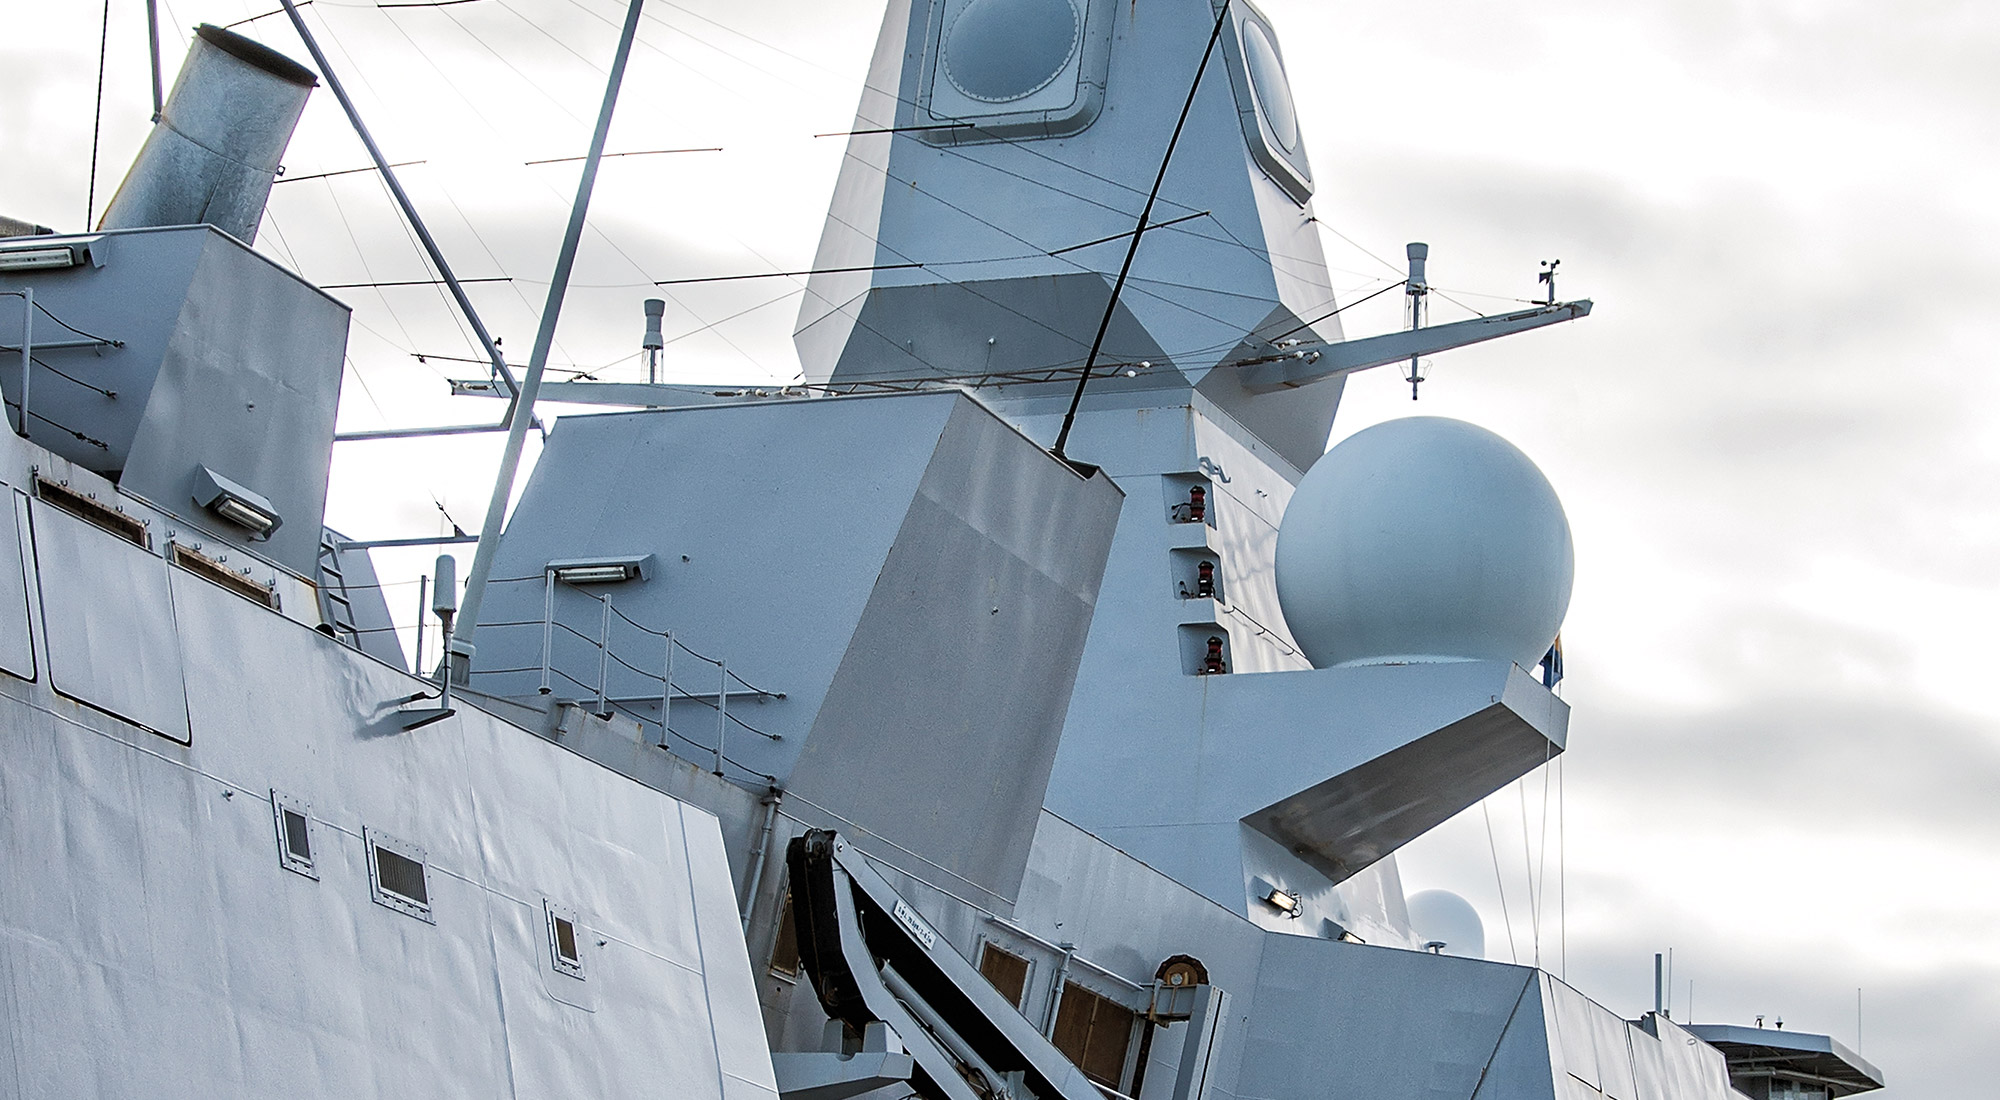 3sdl image of battle ship and radar technology